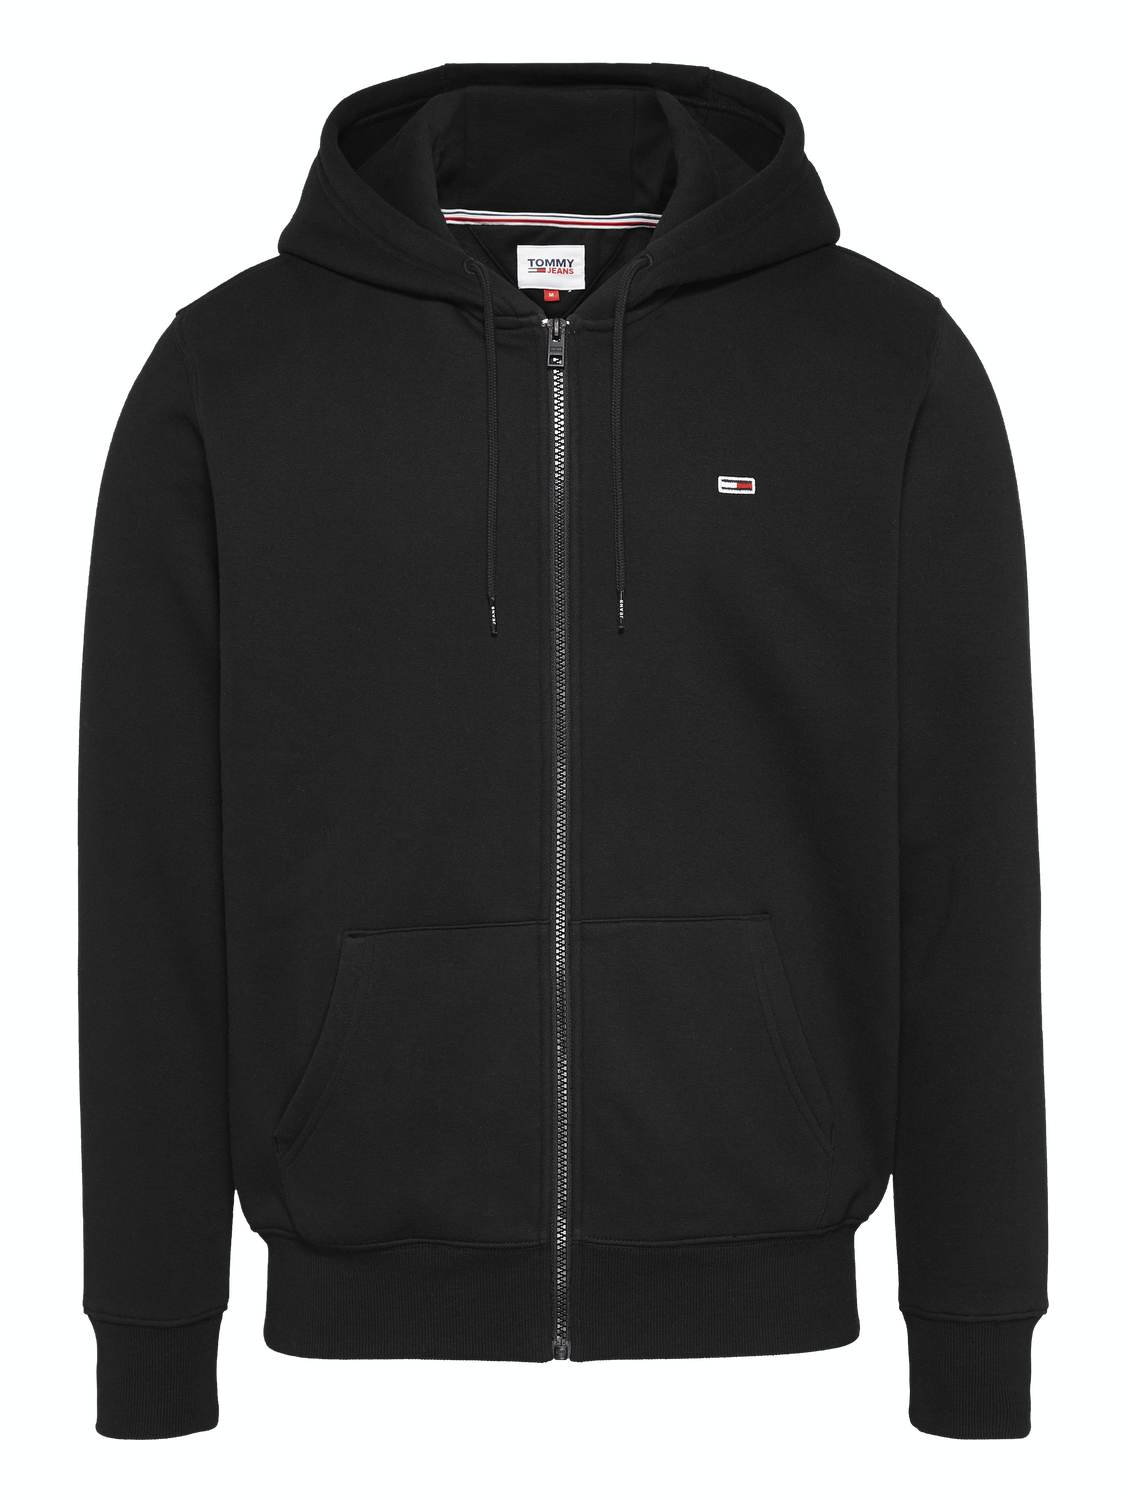 TOMMY HILFIGER - Fleece cardigan black | Gate36 Hobro